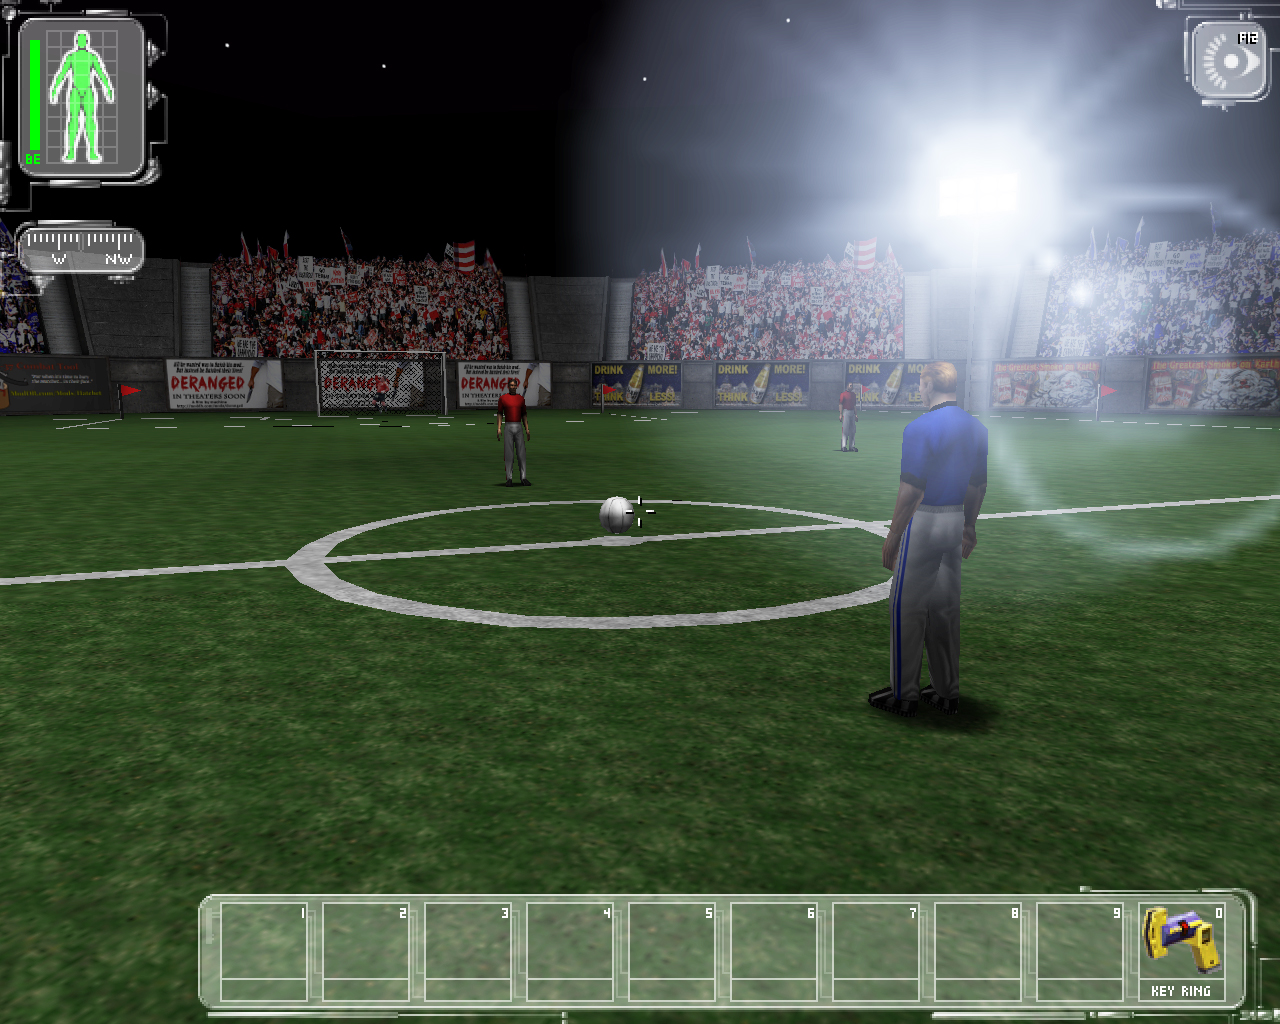 Dx soccer mod file mod db - Dx images download ...